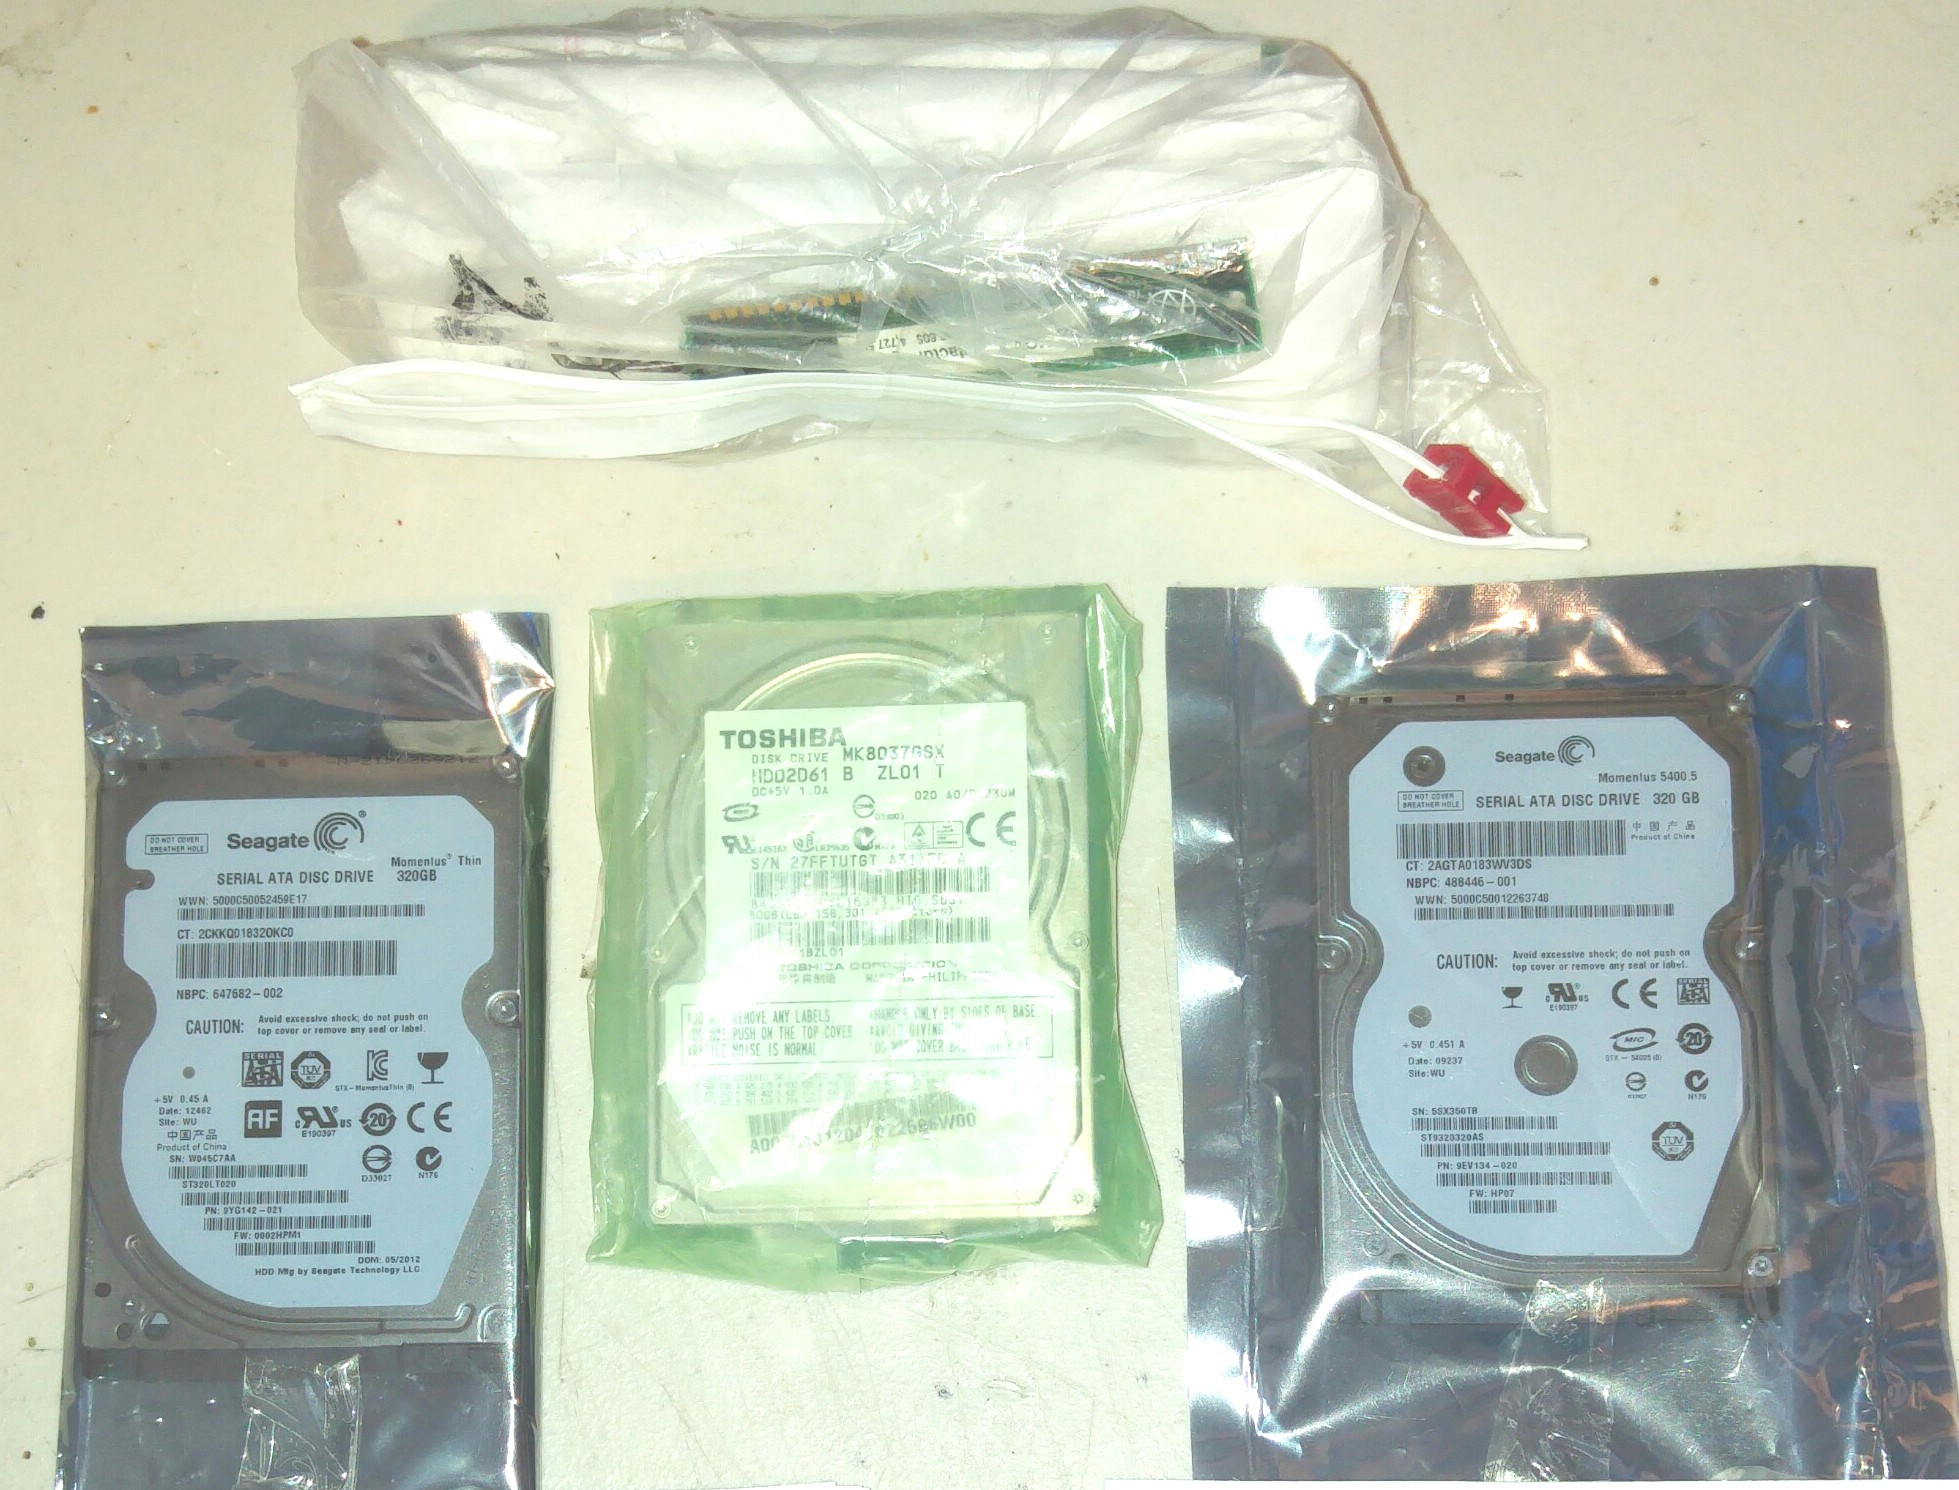 3 Hard Drives and 15 assorted memory sticks - sell whole lot